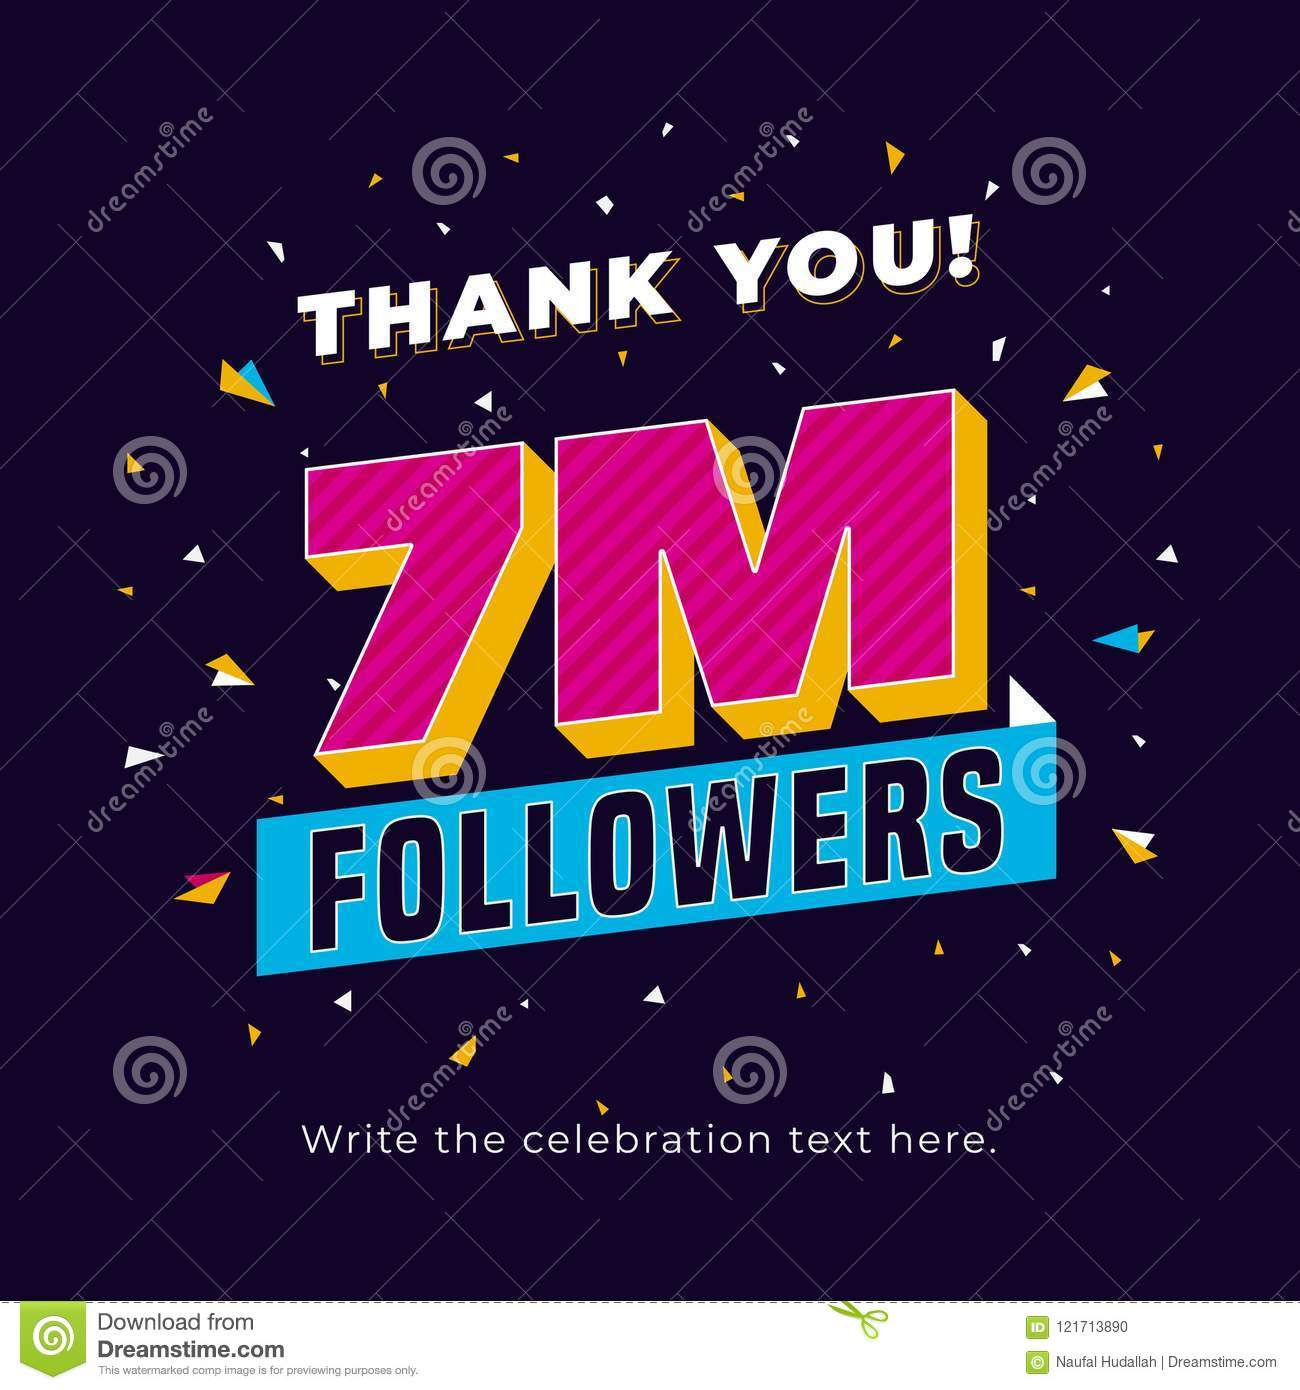 e334c7aa392 7m followers, seven million followers social media post background  template. Creative celebration typography design with confetti ornament for  online ...